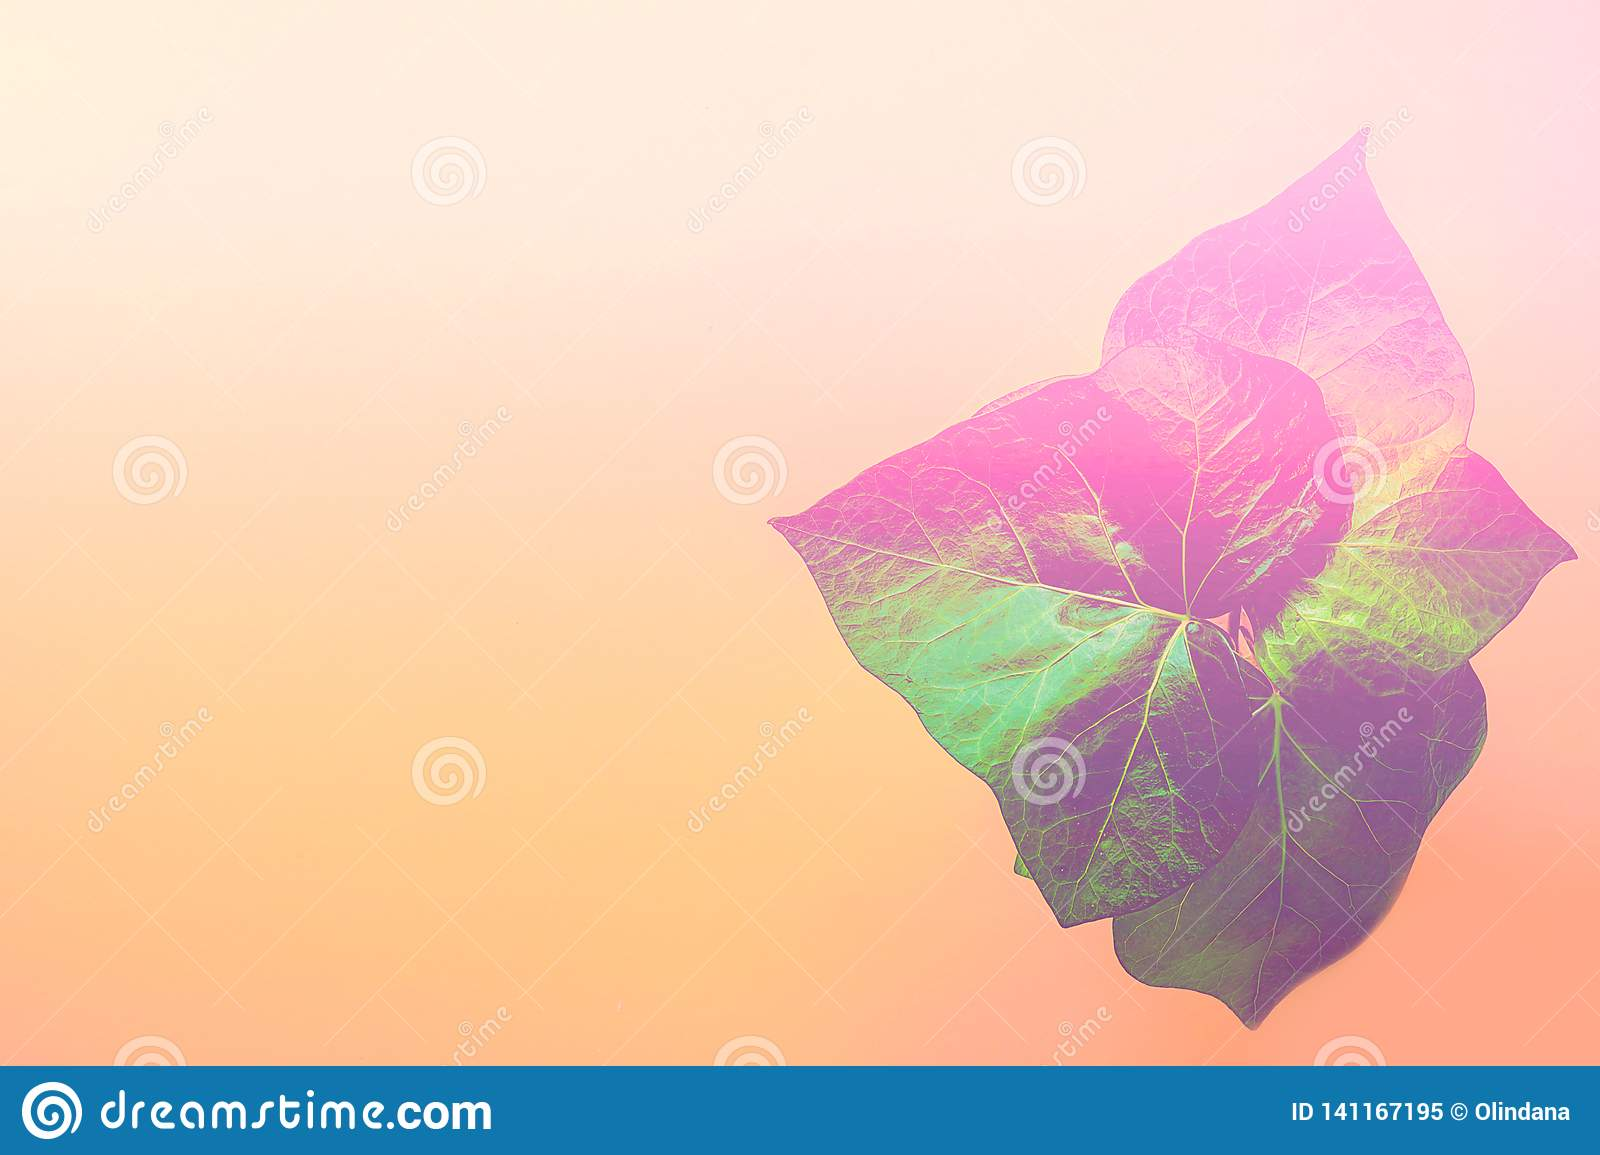 Green potted house room plant on duotone gradient peachy pink yellow background. Purple leaks. Neon colors. Trendy abstract